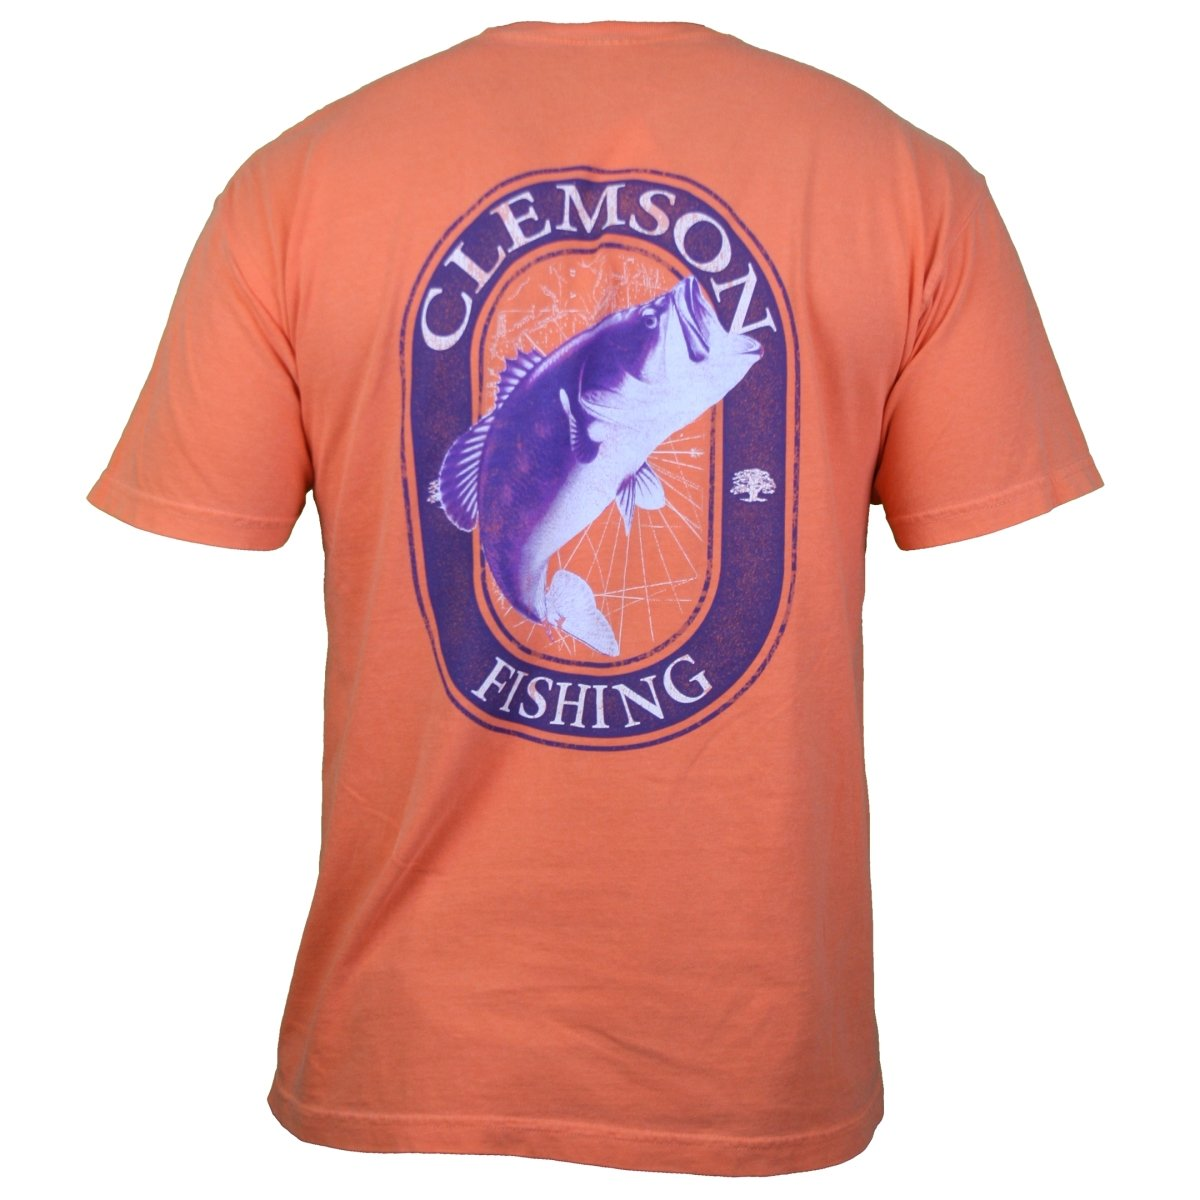 Comfort Color Bass Fishing Pocket Tee - Mr. Knickerbocker